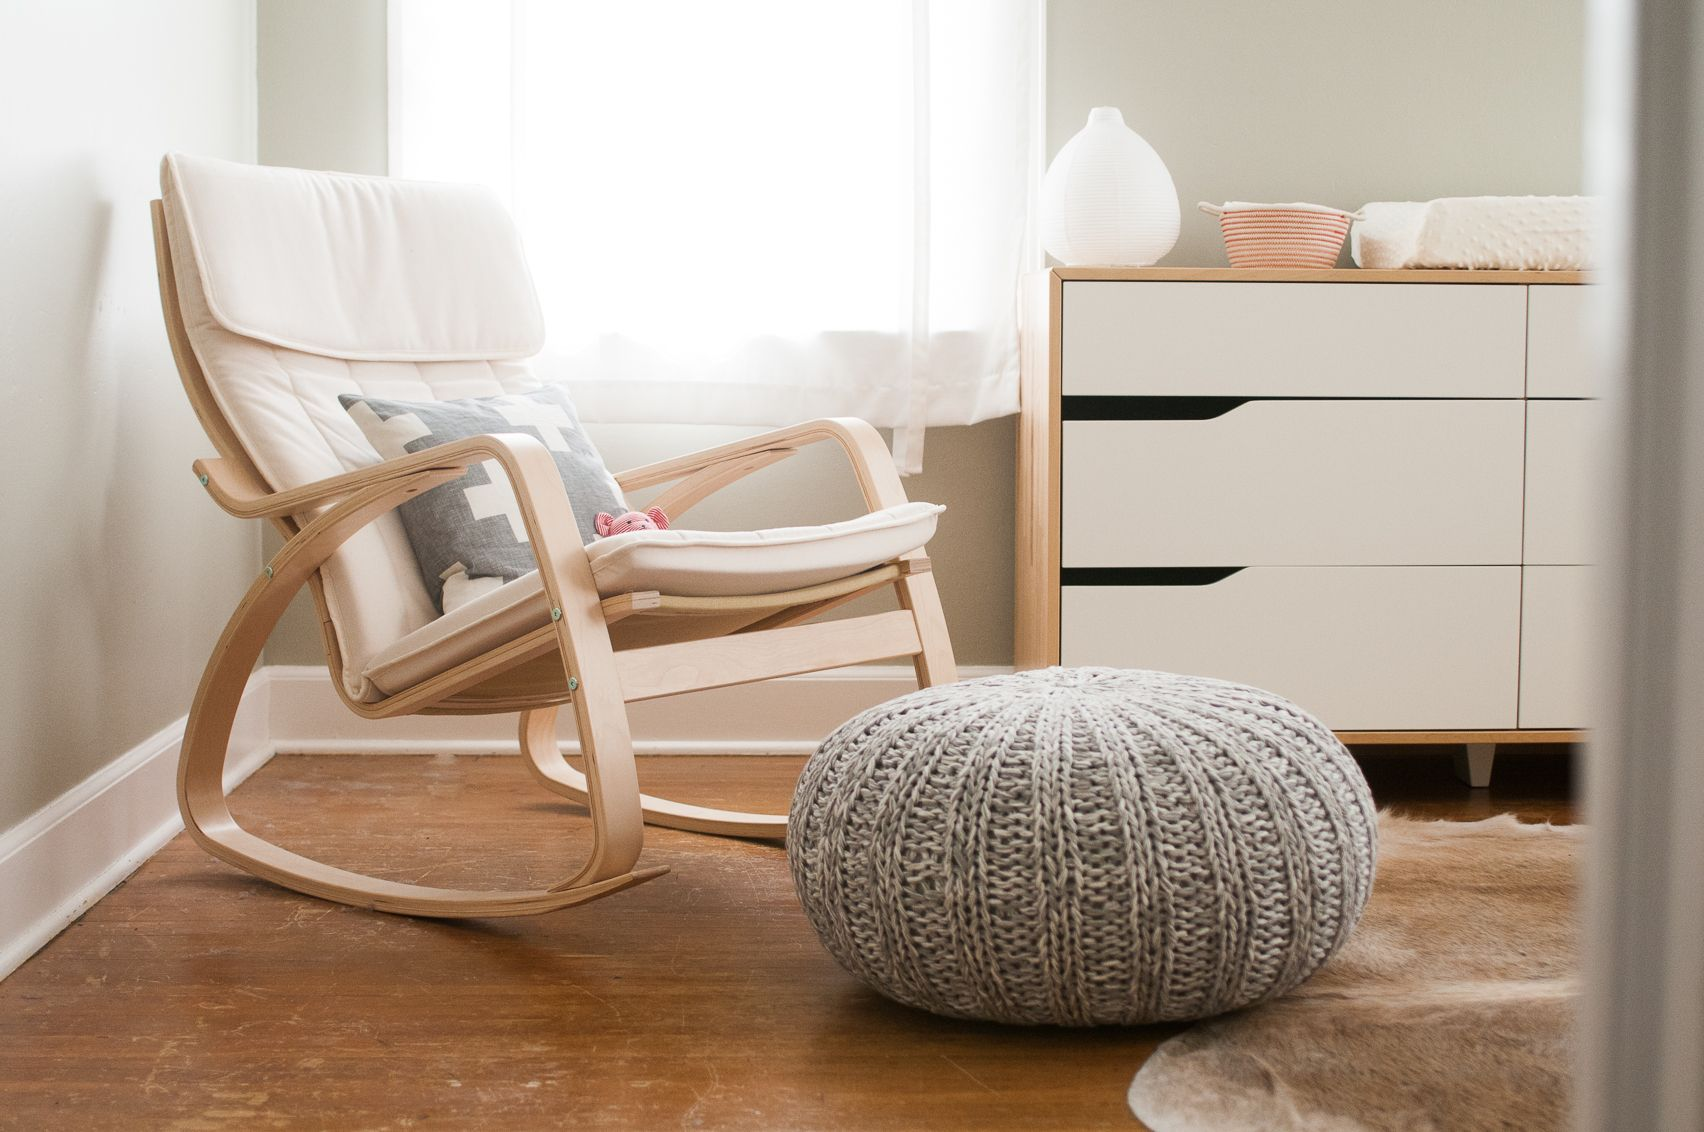 ... room project nursery nursery inspiration babies nursery rocking chair